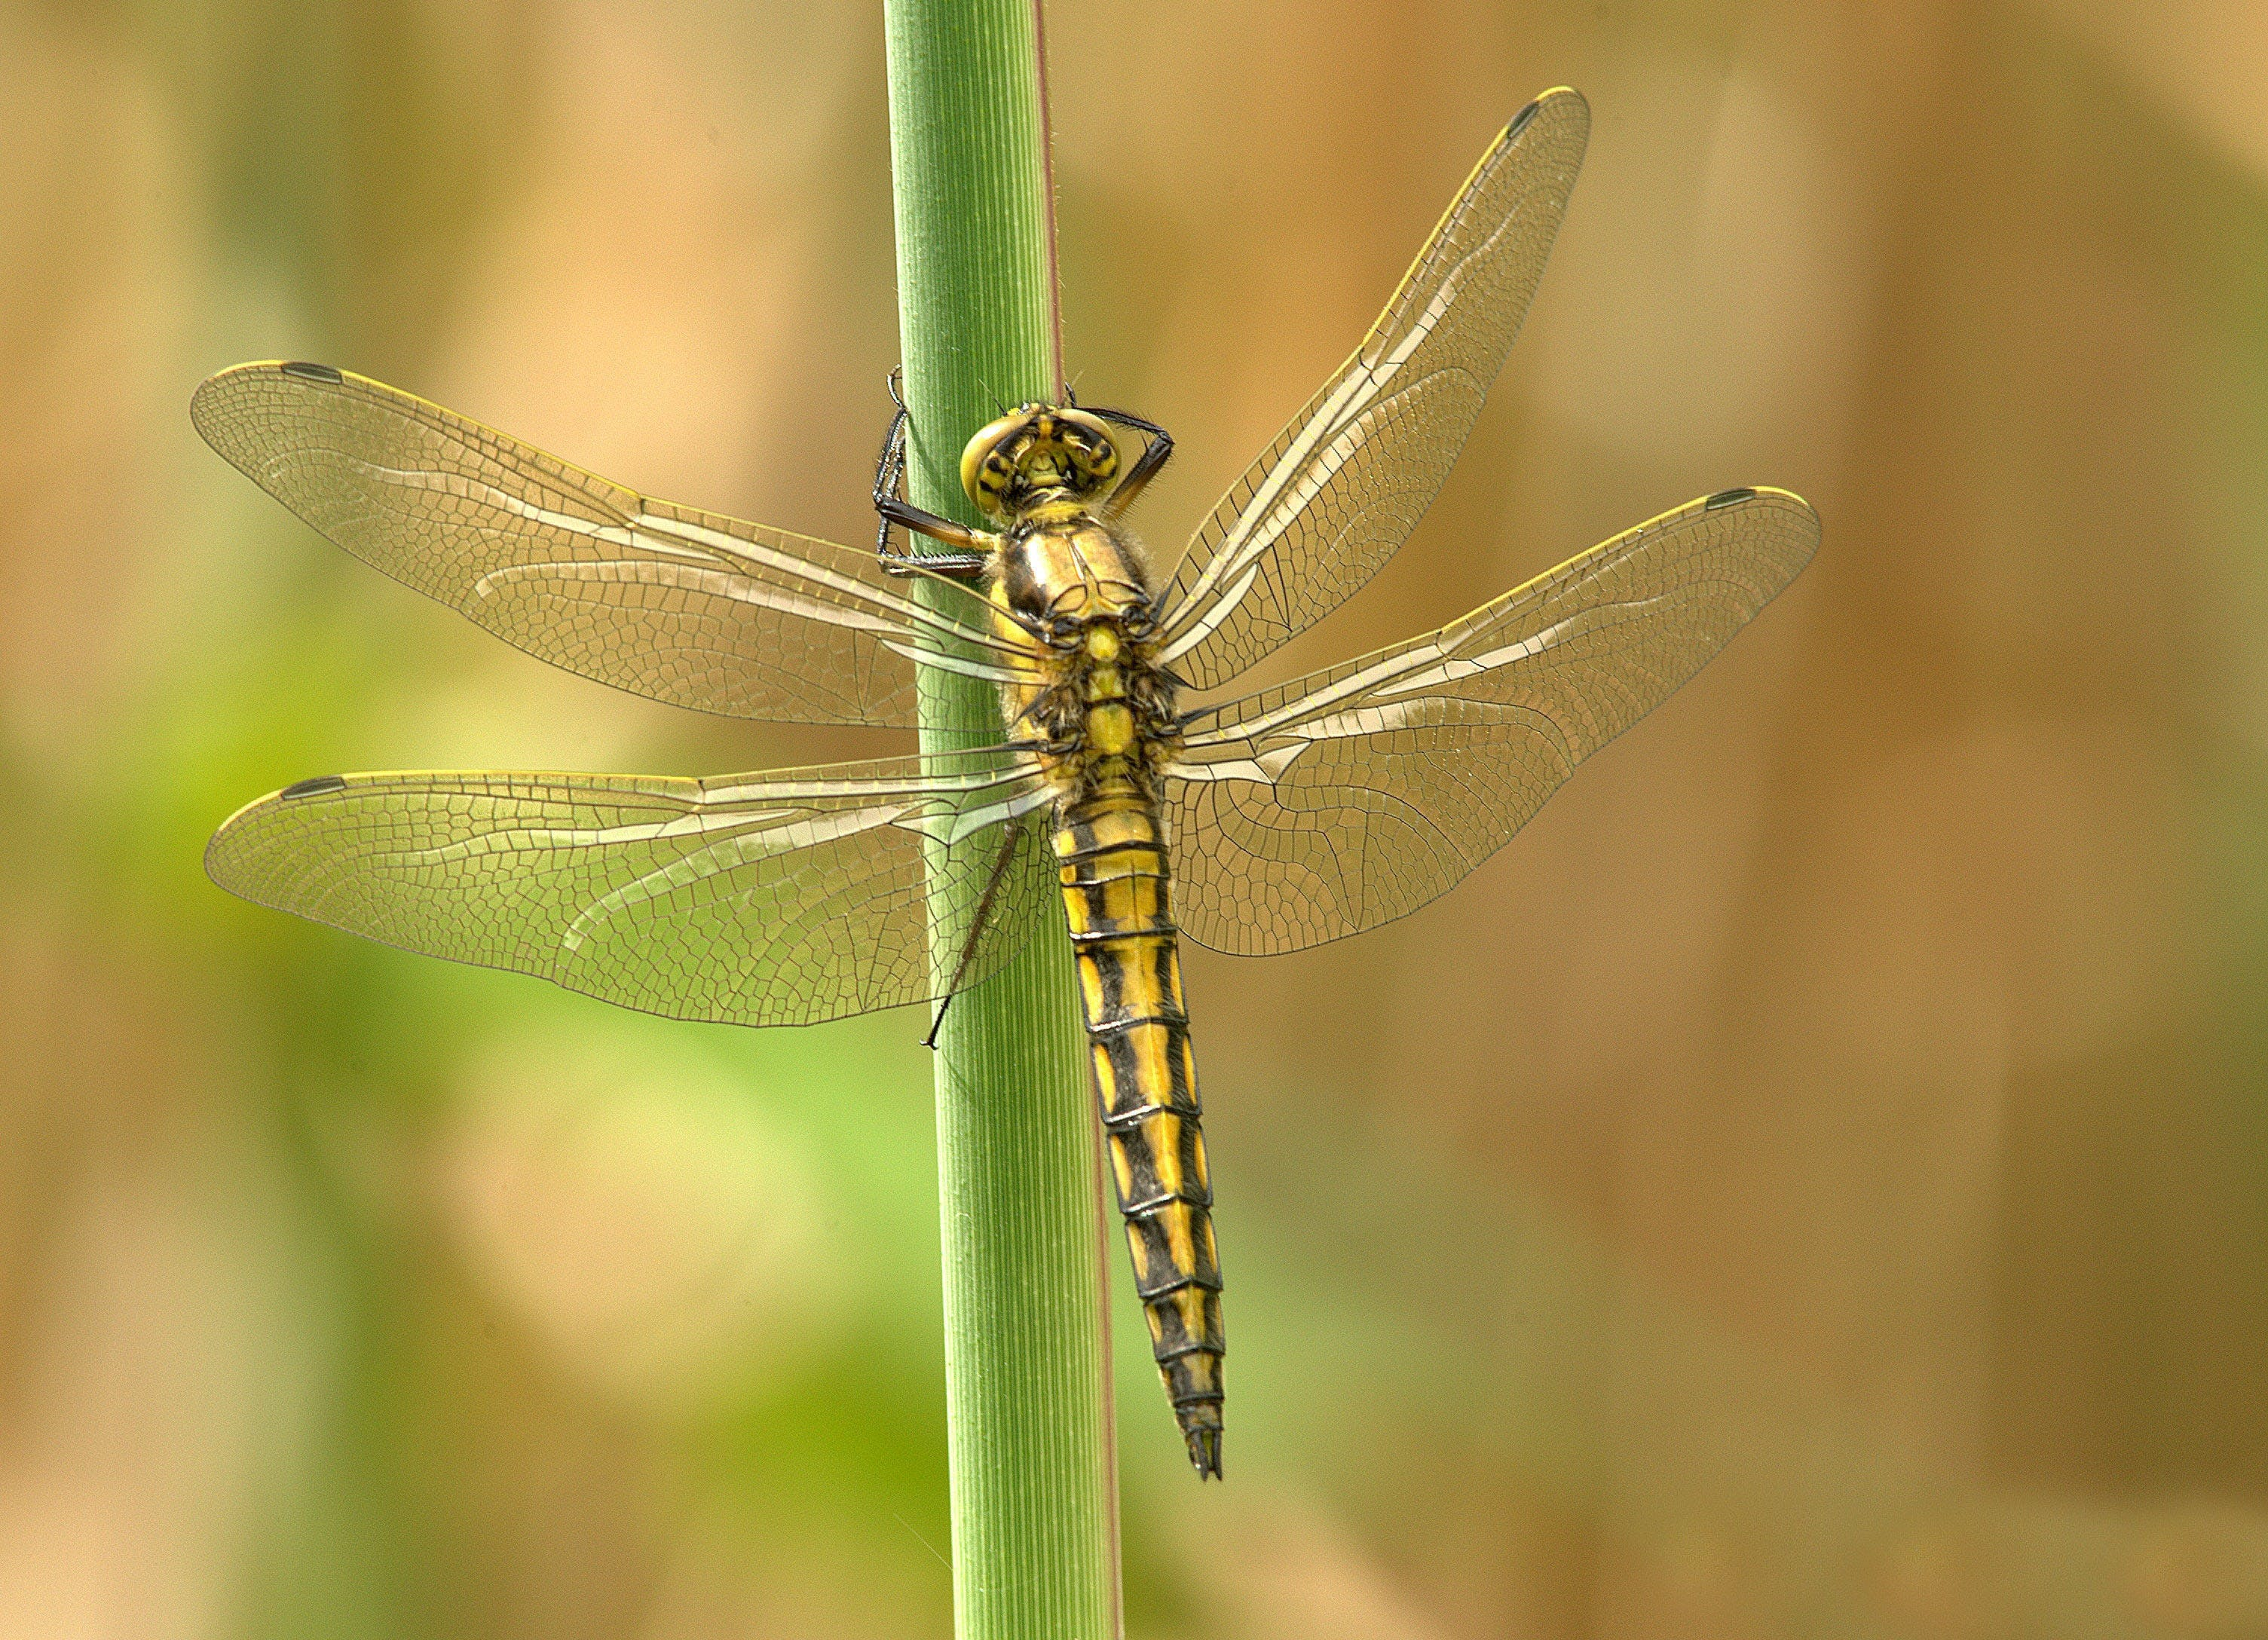 Yellow and Black Dragonfly on Green Stem during Daytime